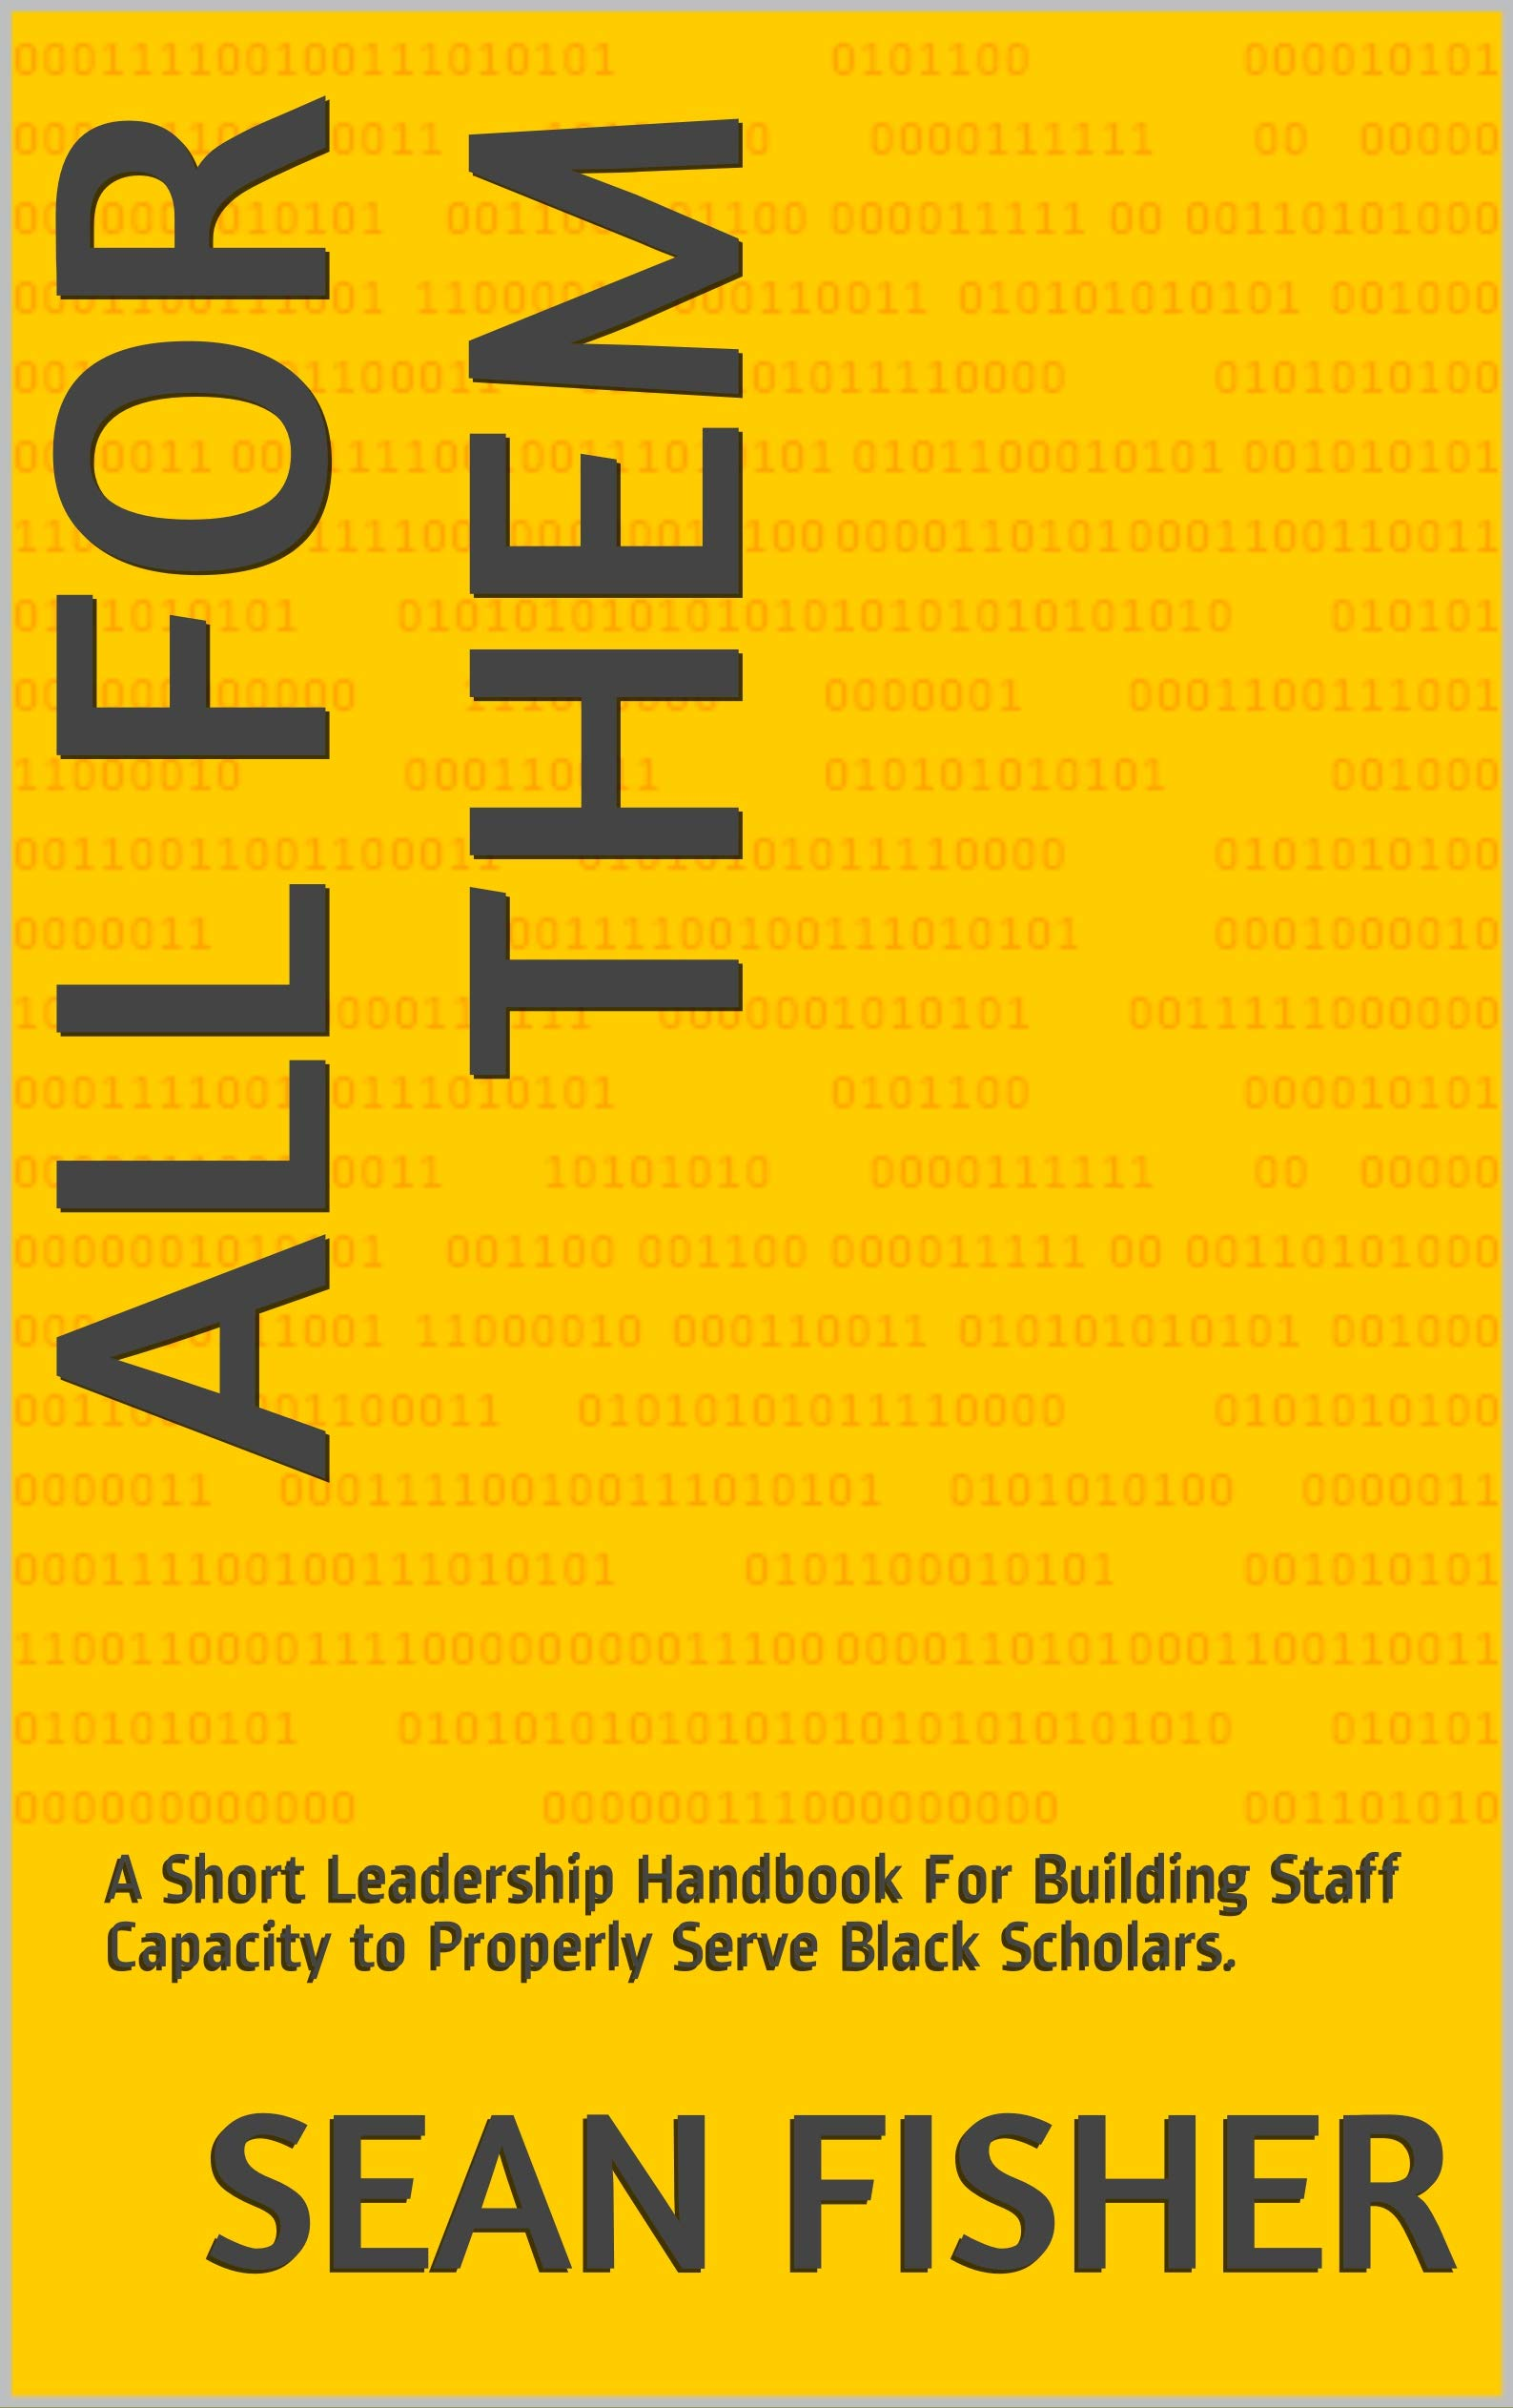 All For Them: A Short Leadership Handbook For Building Staff Capacity to Properly Serve Black Scholars.